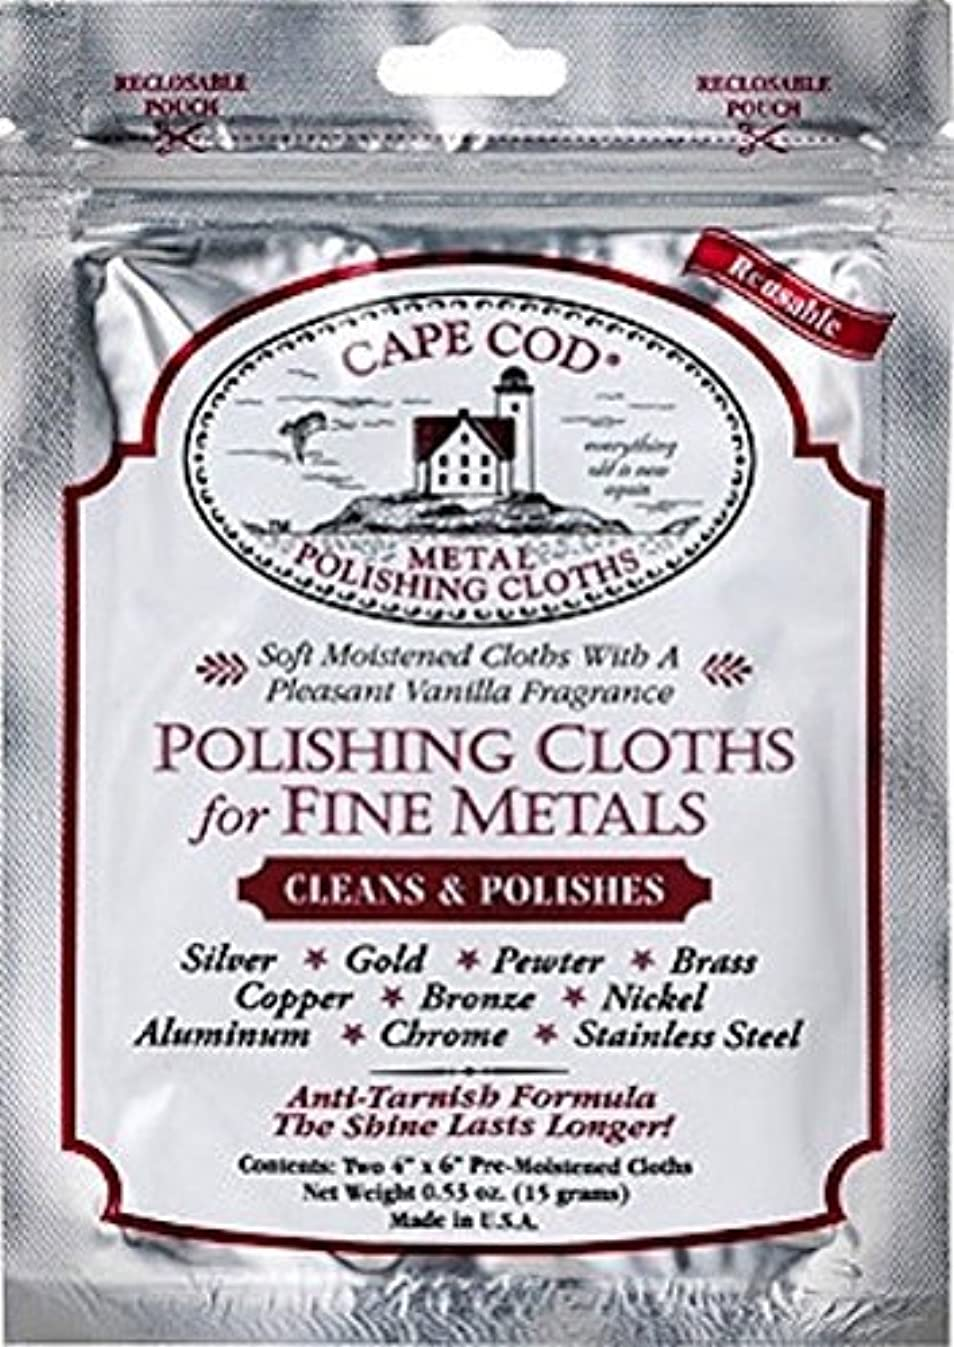 Cape Cod Metal Polishing Cloths Package of 2